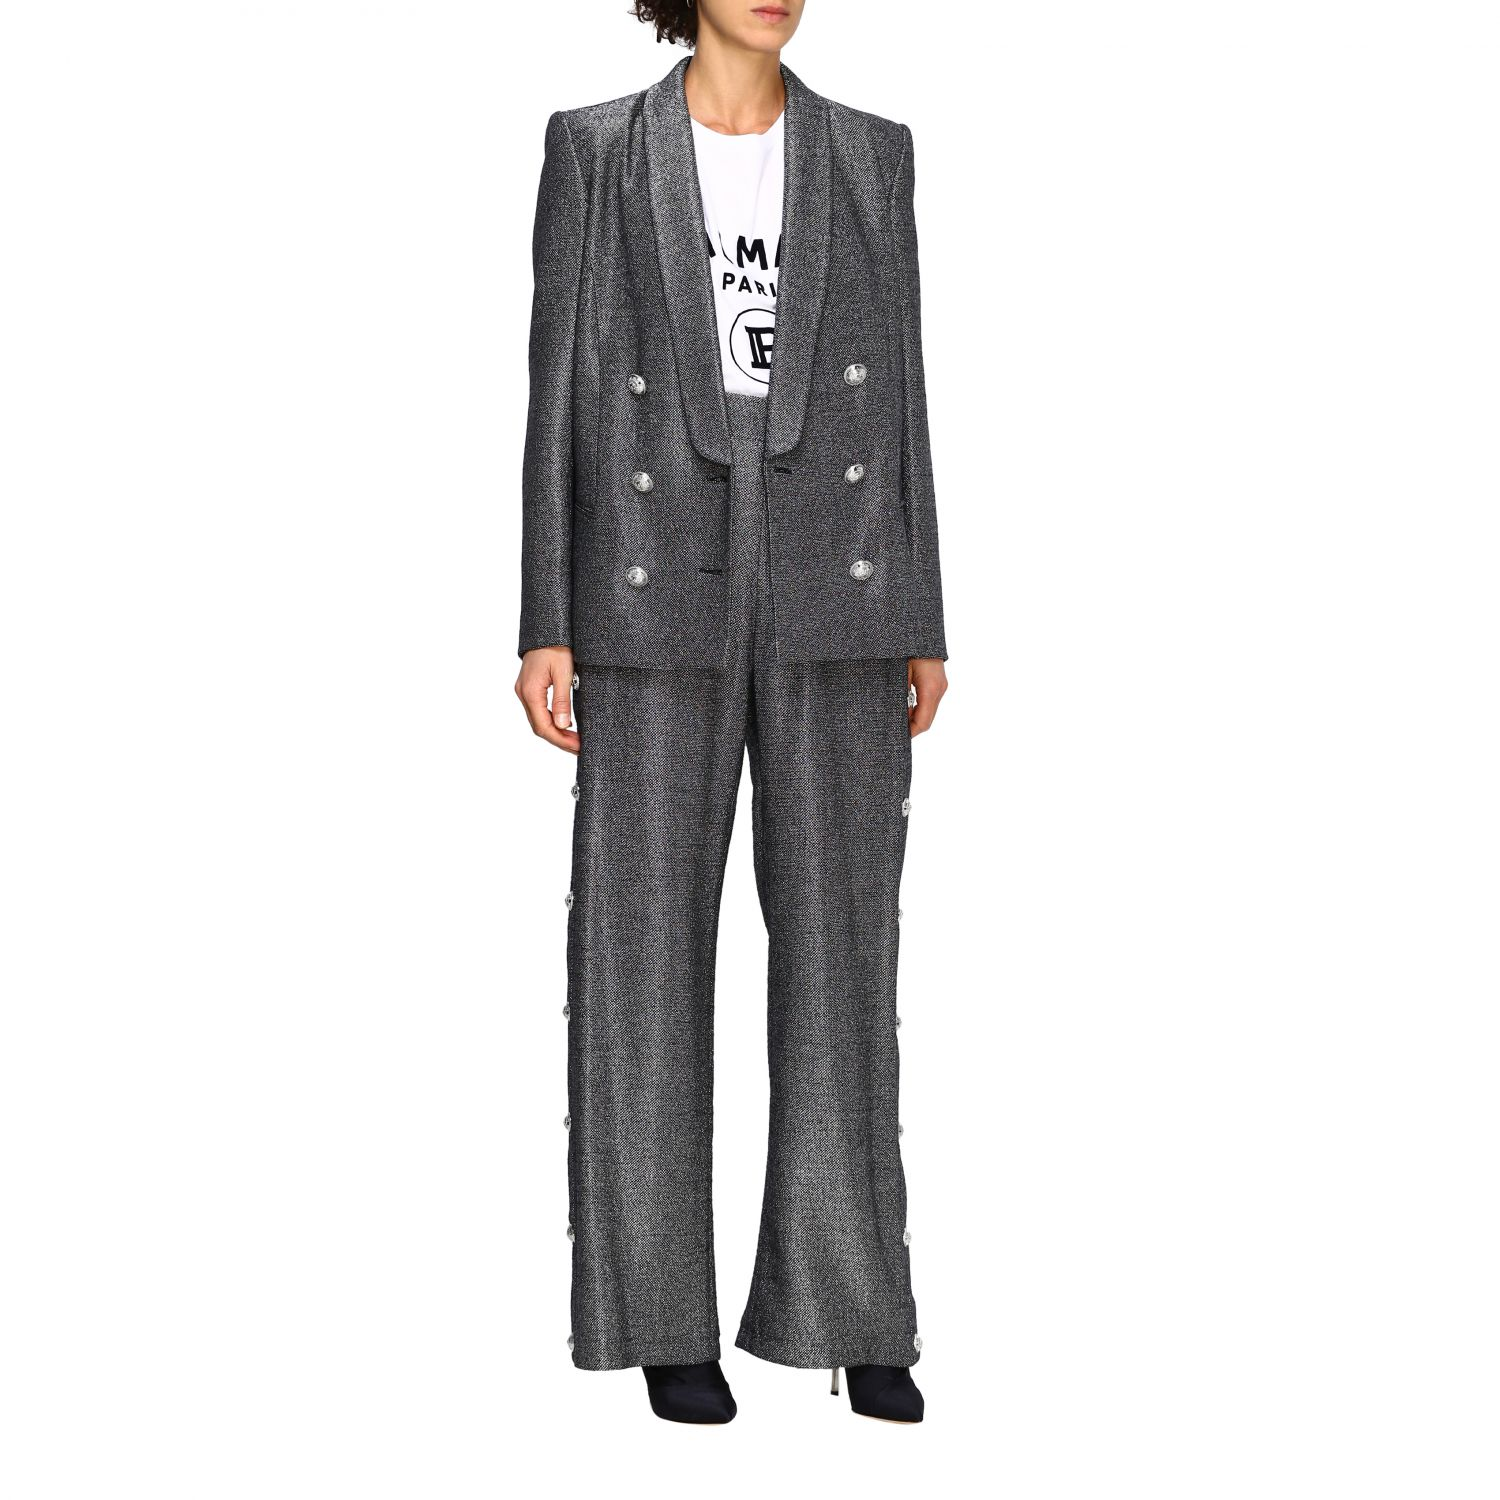 Trousers Balmain: Wide Balmain trousers in lurex knit with jewel buttons black 2